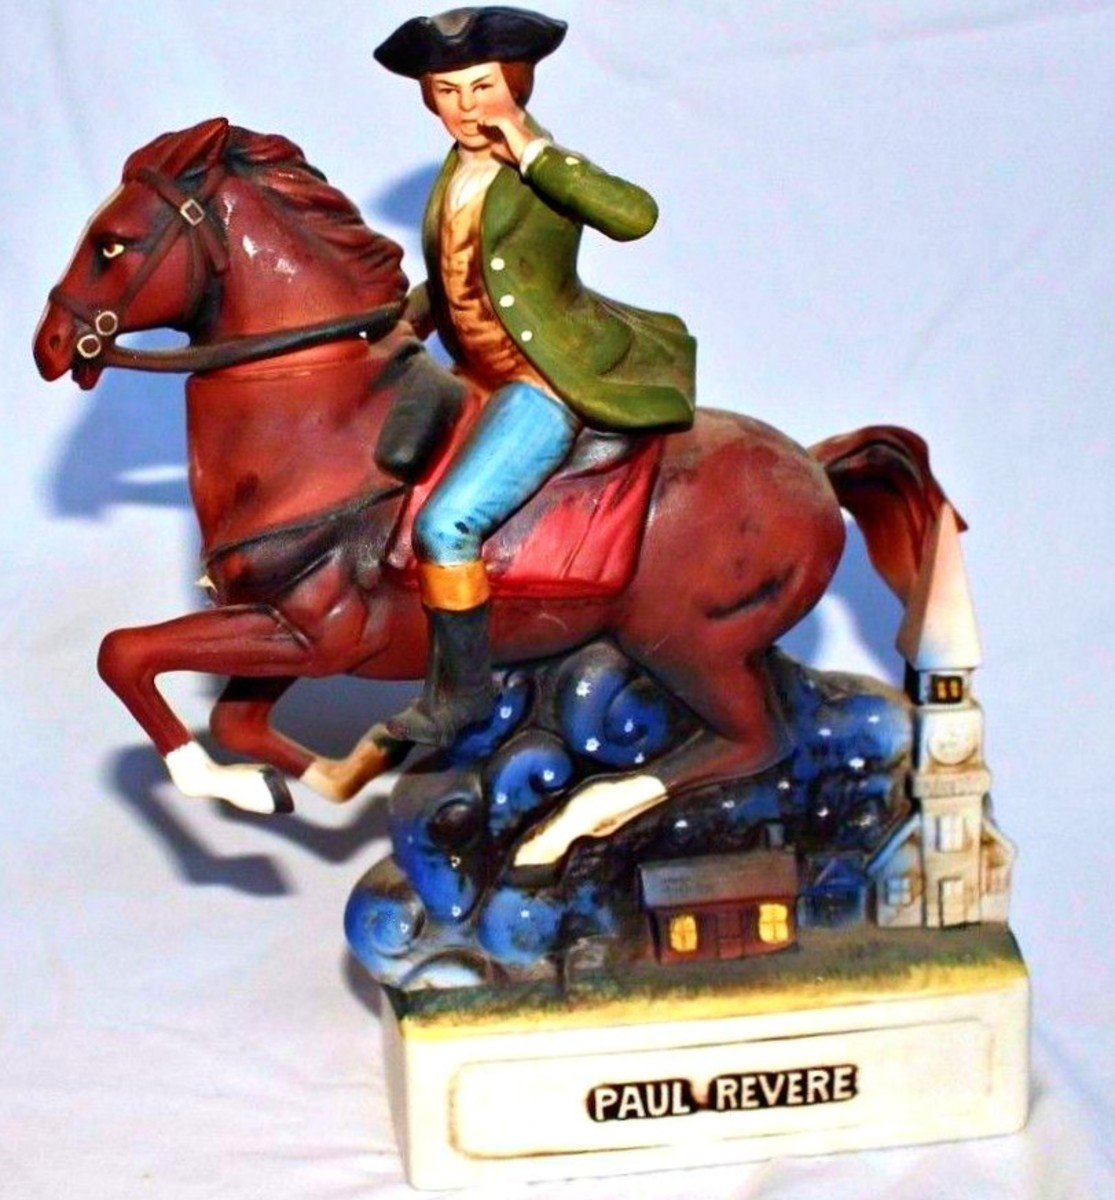 Because Paul Revere was immortalized after his death for very brave and patriotic role as a messenger that the British are coming to the American minutemen in the battles of Lexington and Concord, he has become a simple of the spirit of 1776 â¦